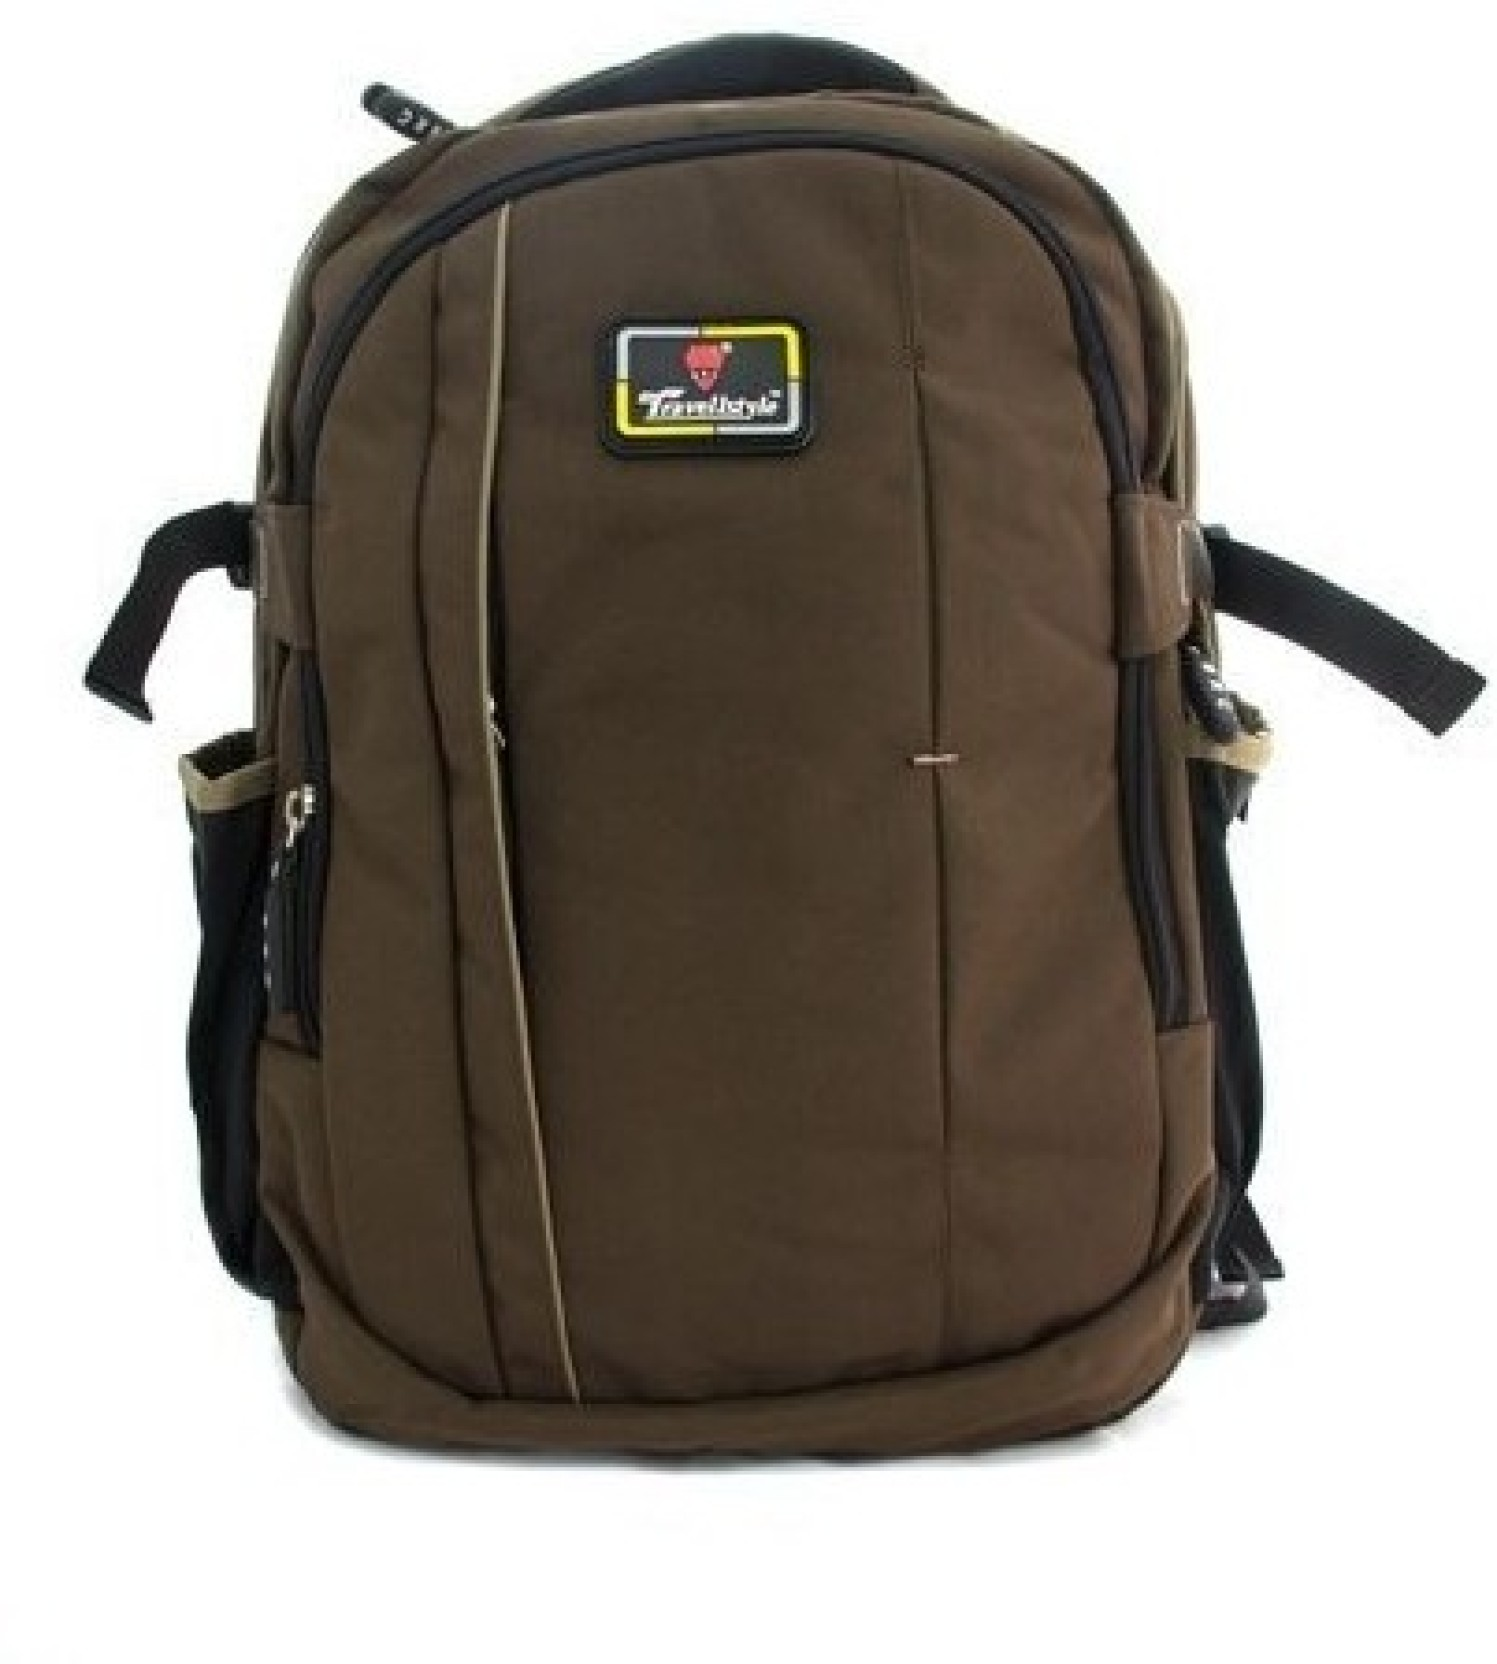 duckback lp ts 5009 rs 1750 backpack brown price in